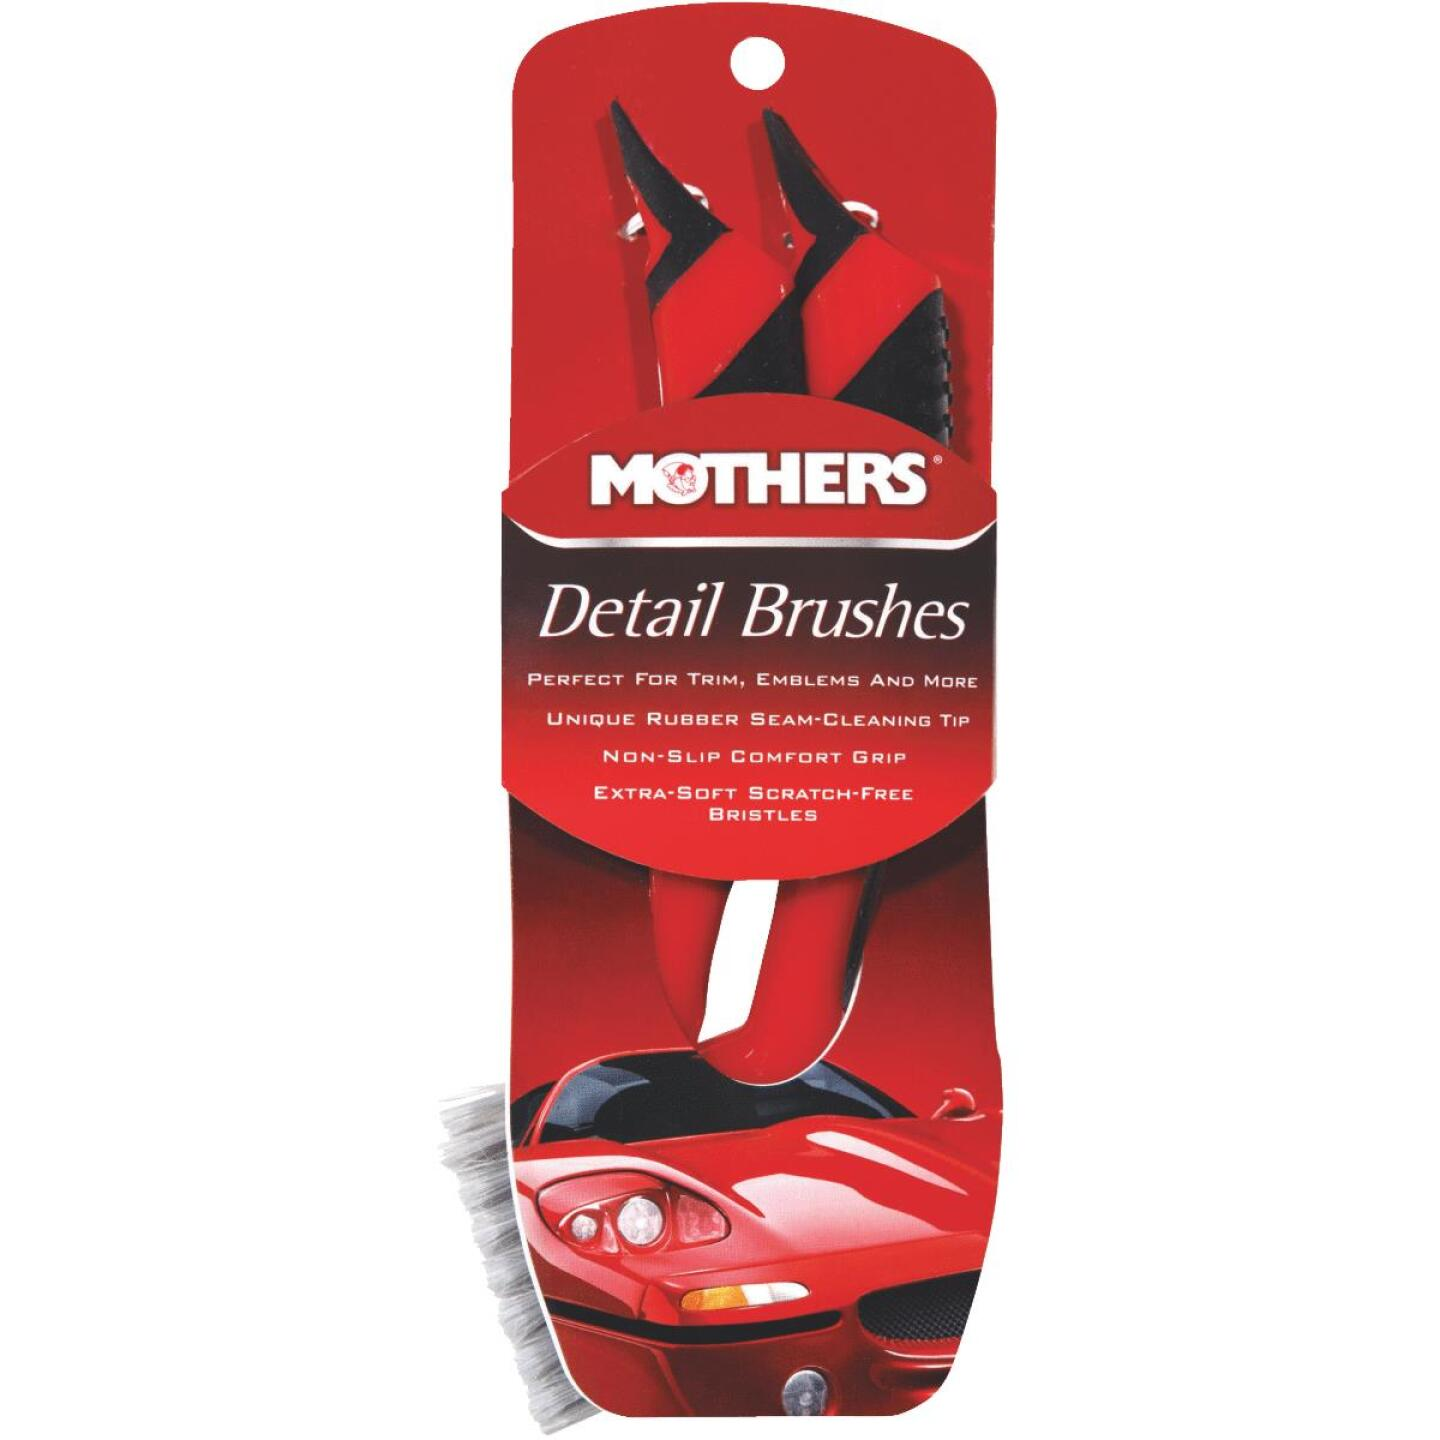 Mothers Detailing Brush (2-Pack) Image 1